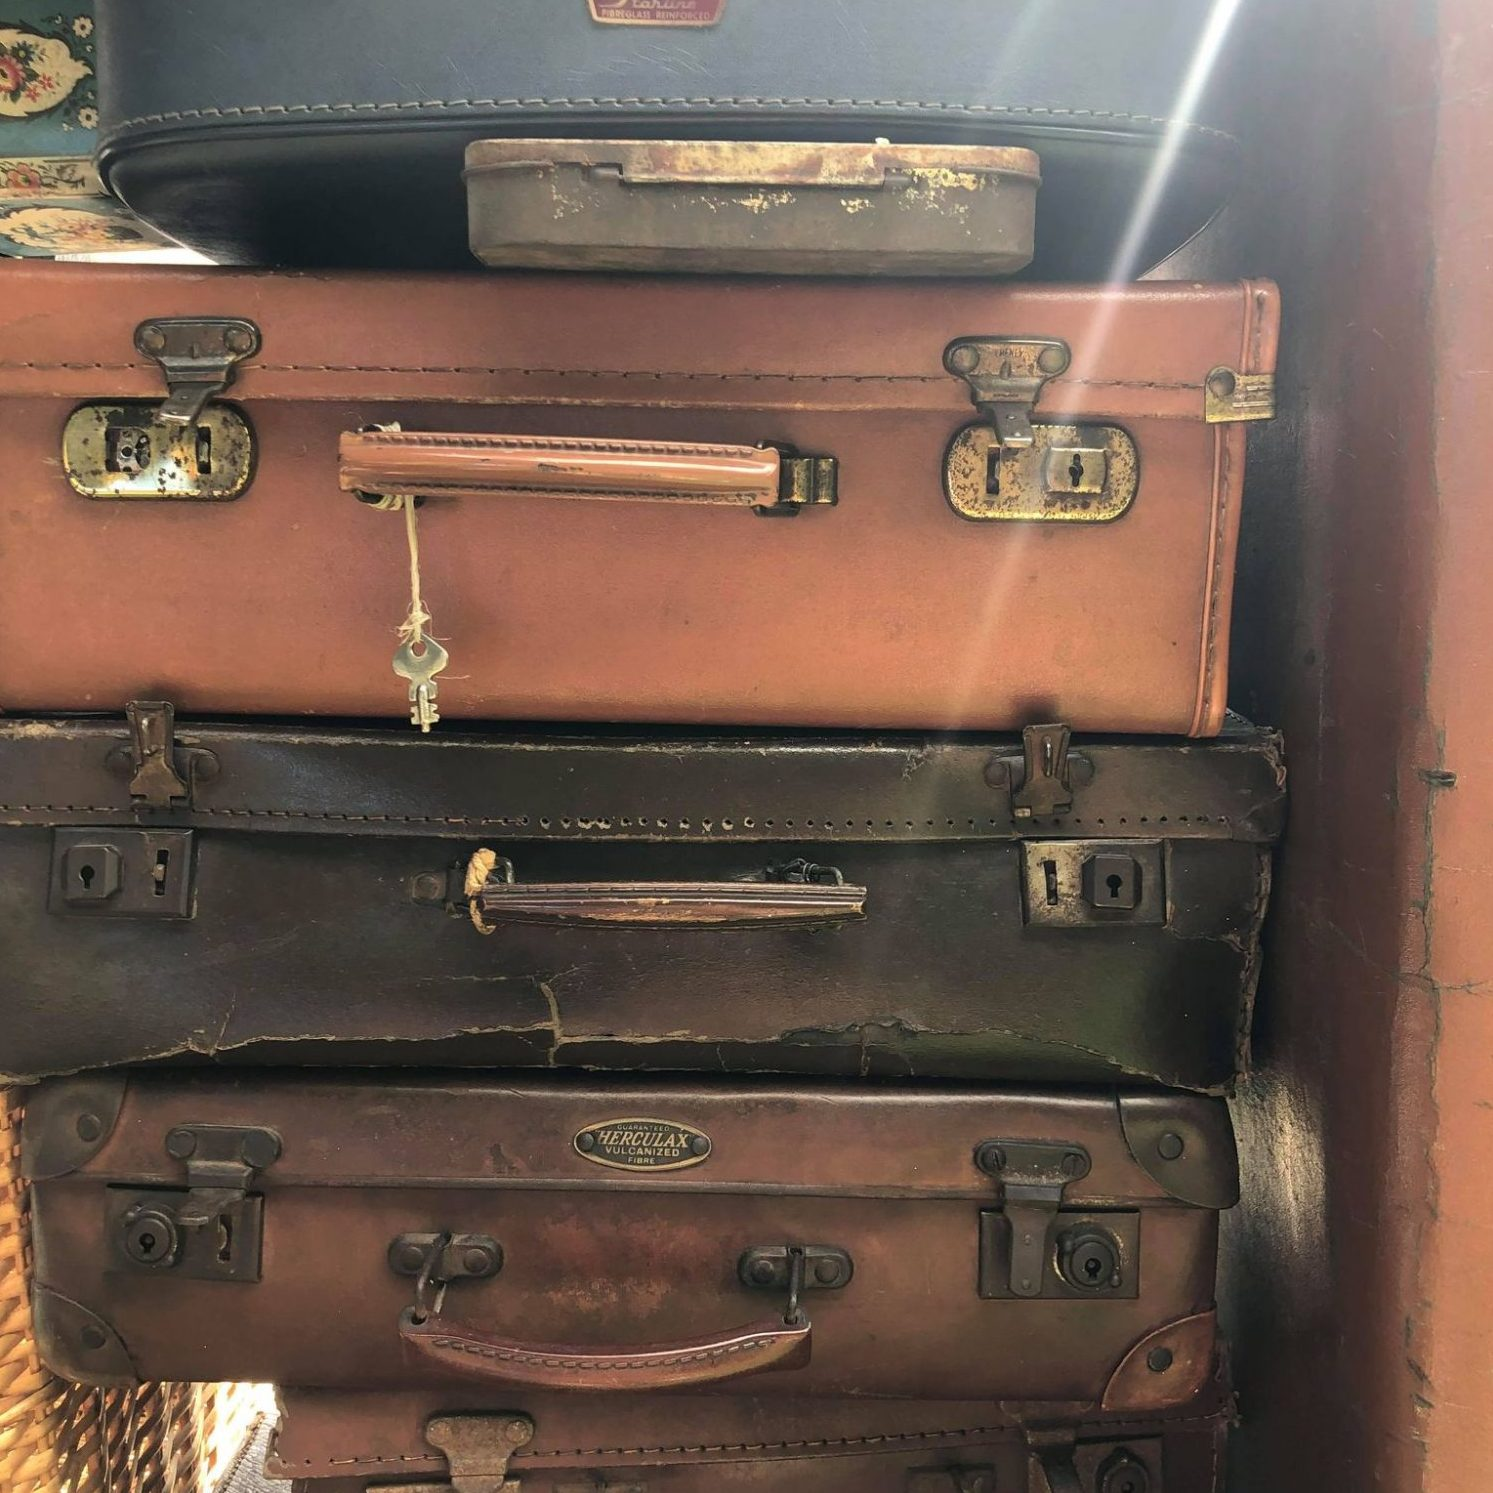 A pile of leather suitcases